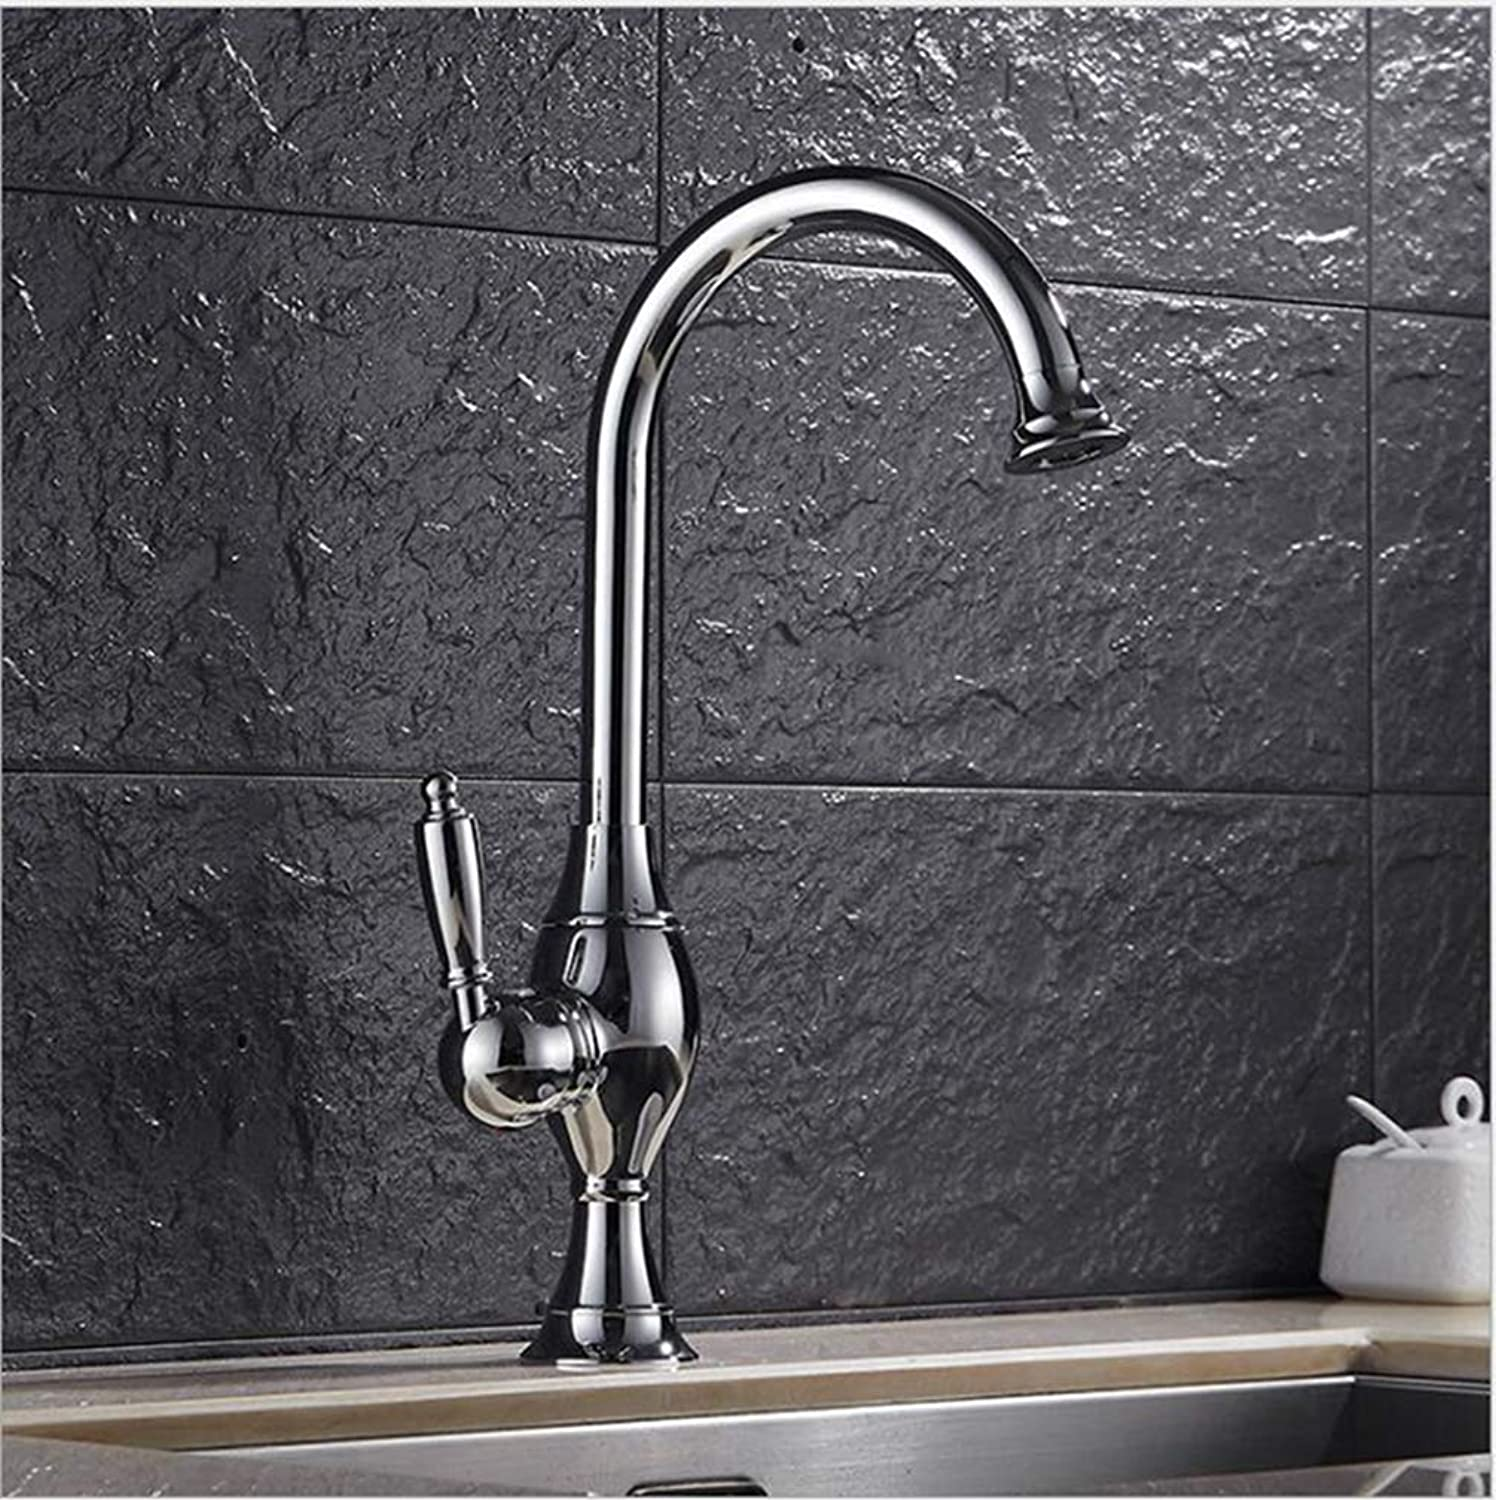 FZHLR Brass 360 Degree Brushed Nickel Or gold Chrome Kitchen Faucet Sink Faucet Luxury Water Tap Basin Faucet,Chrome